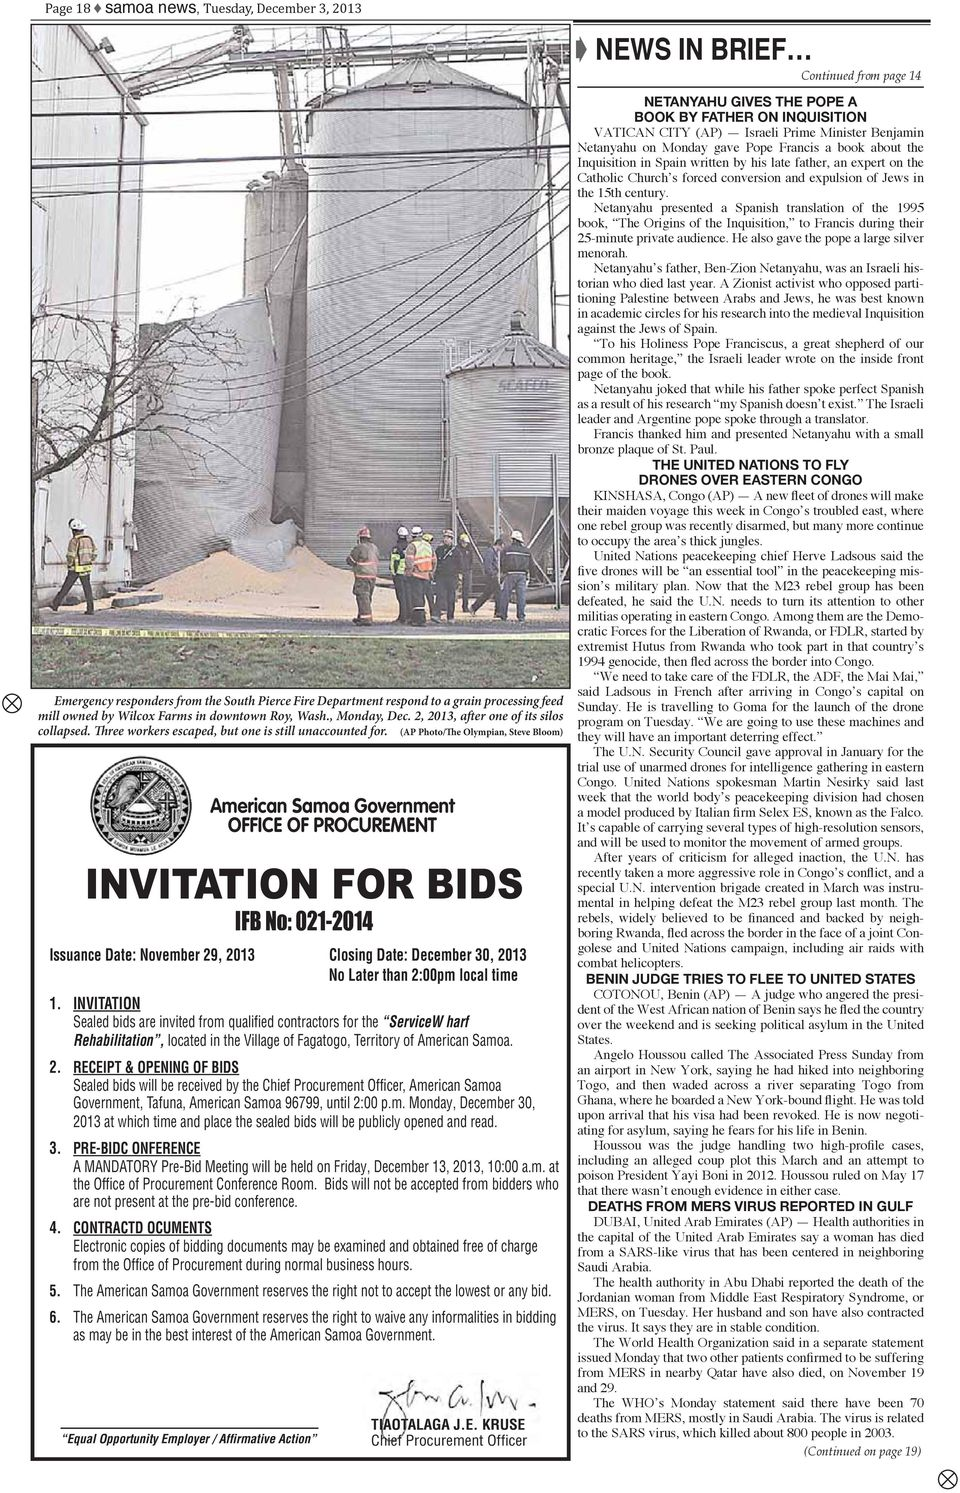 (AP Photo/The Olympian, Steve Bloom) American Samoa Government OFFIE OF PROUREENT INVITATION FOR BIDS IFB No: 021-2014 Issuance Date: November 29, 2013losing Date: December 30, 2013 No Later than